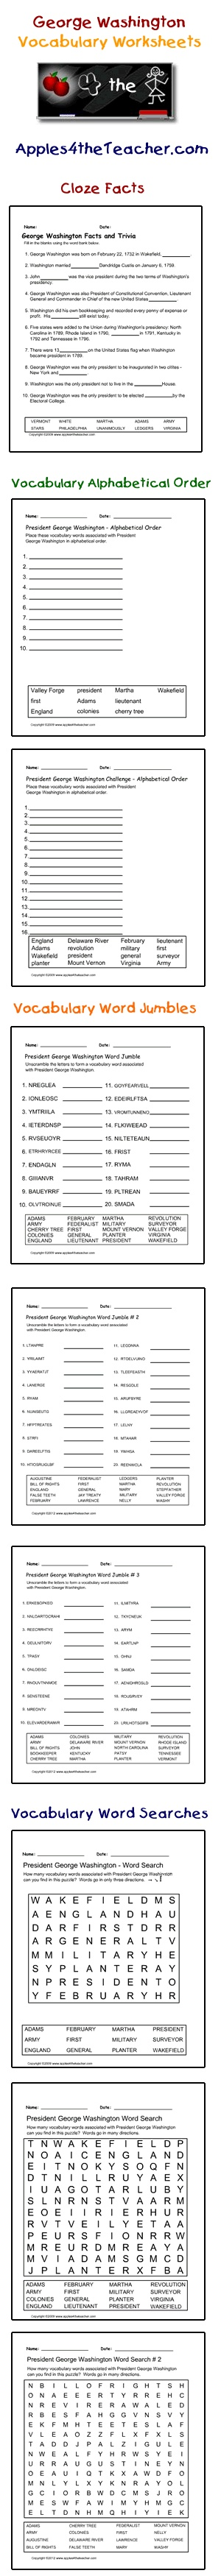 worksheet George Washington Worksheets best 25 george washington kids ideas on pinterest presidents president interactive vocabulary words cloze facts activity page alphabetical order worksheets